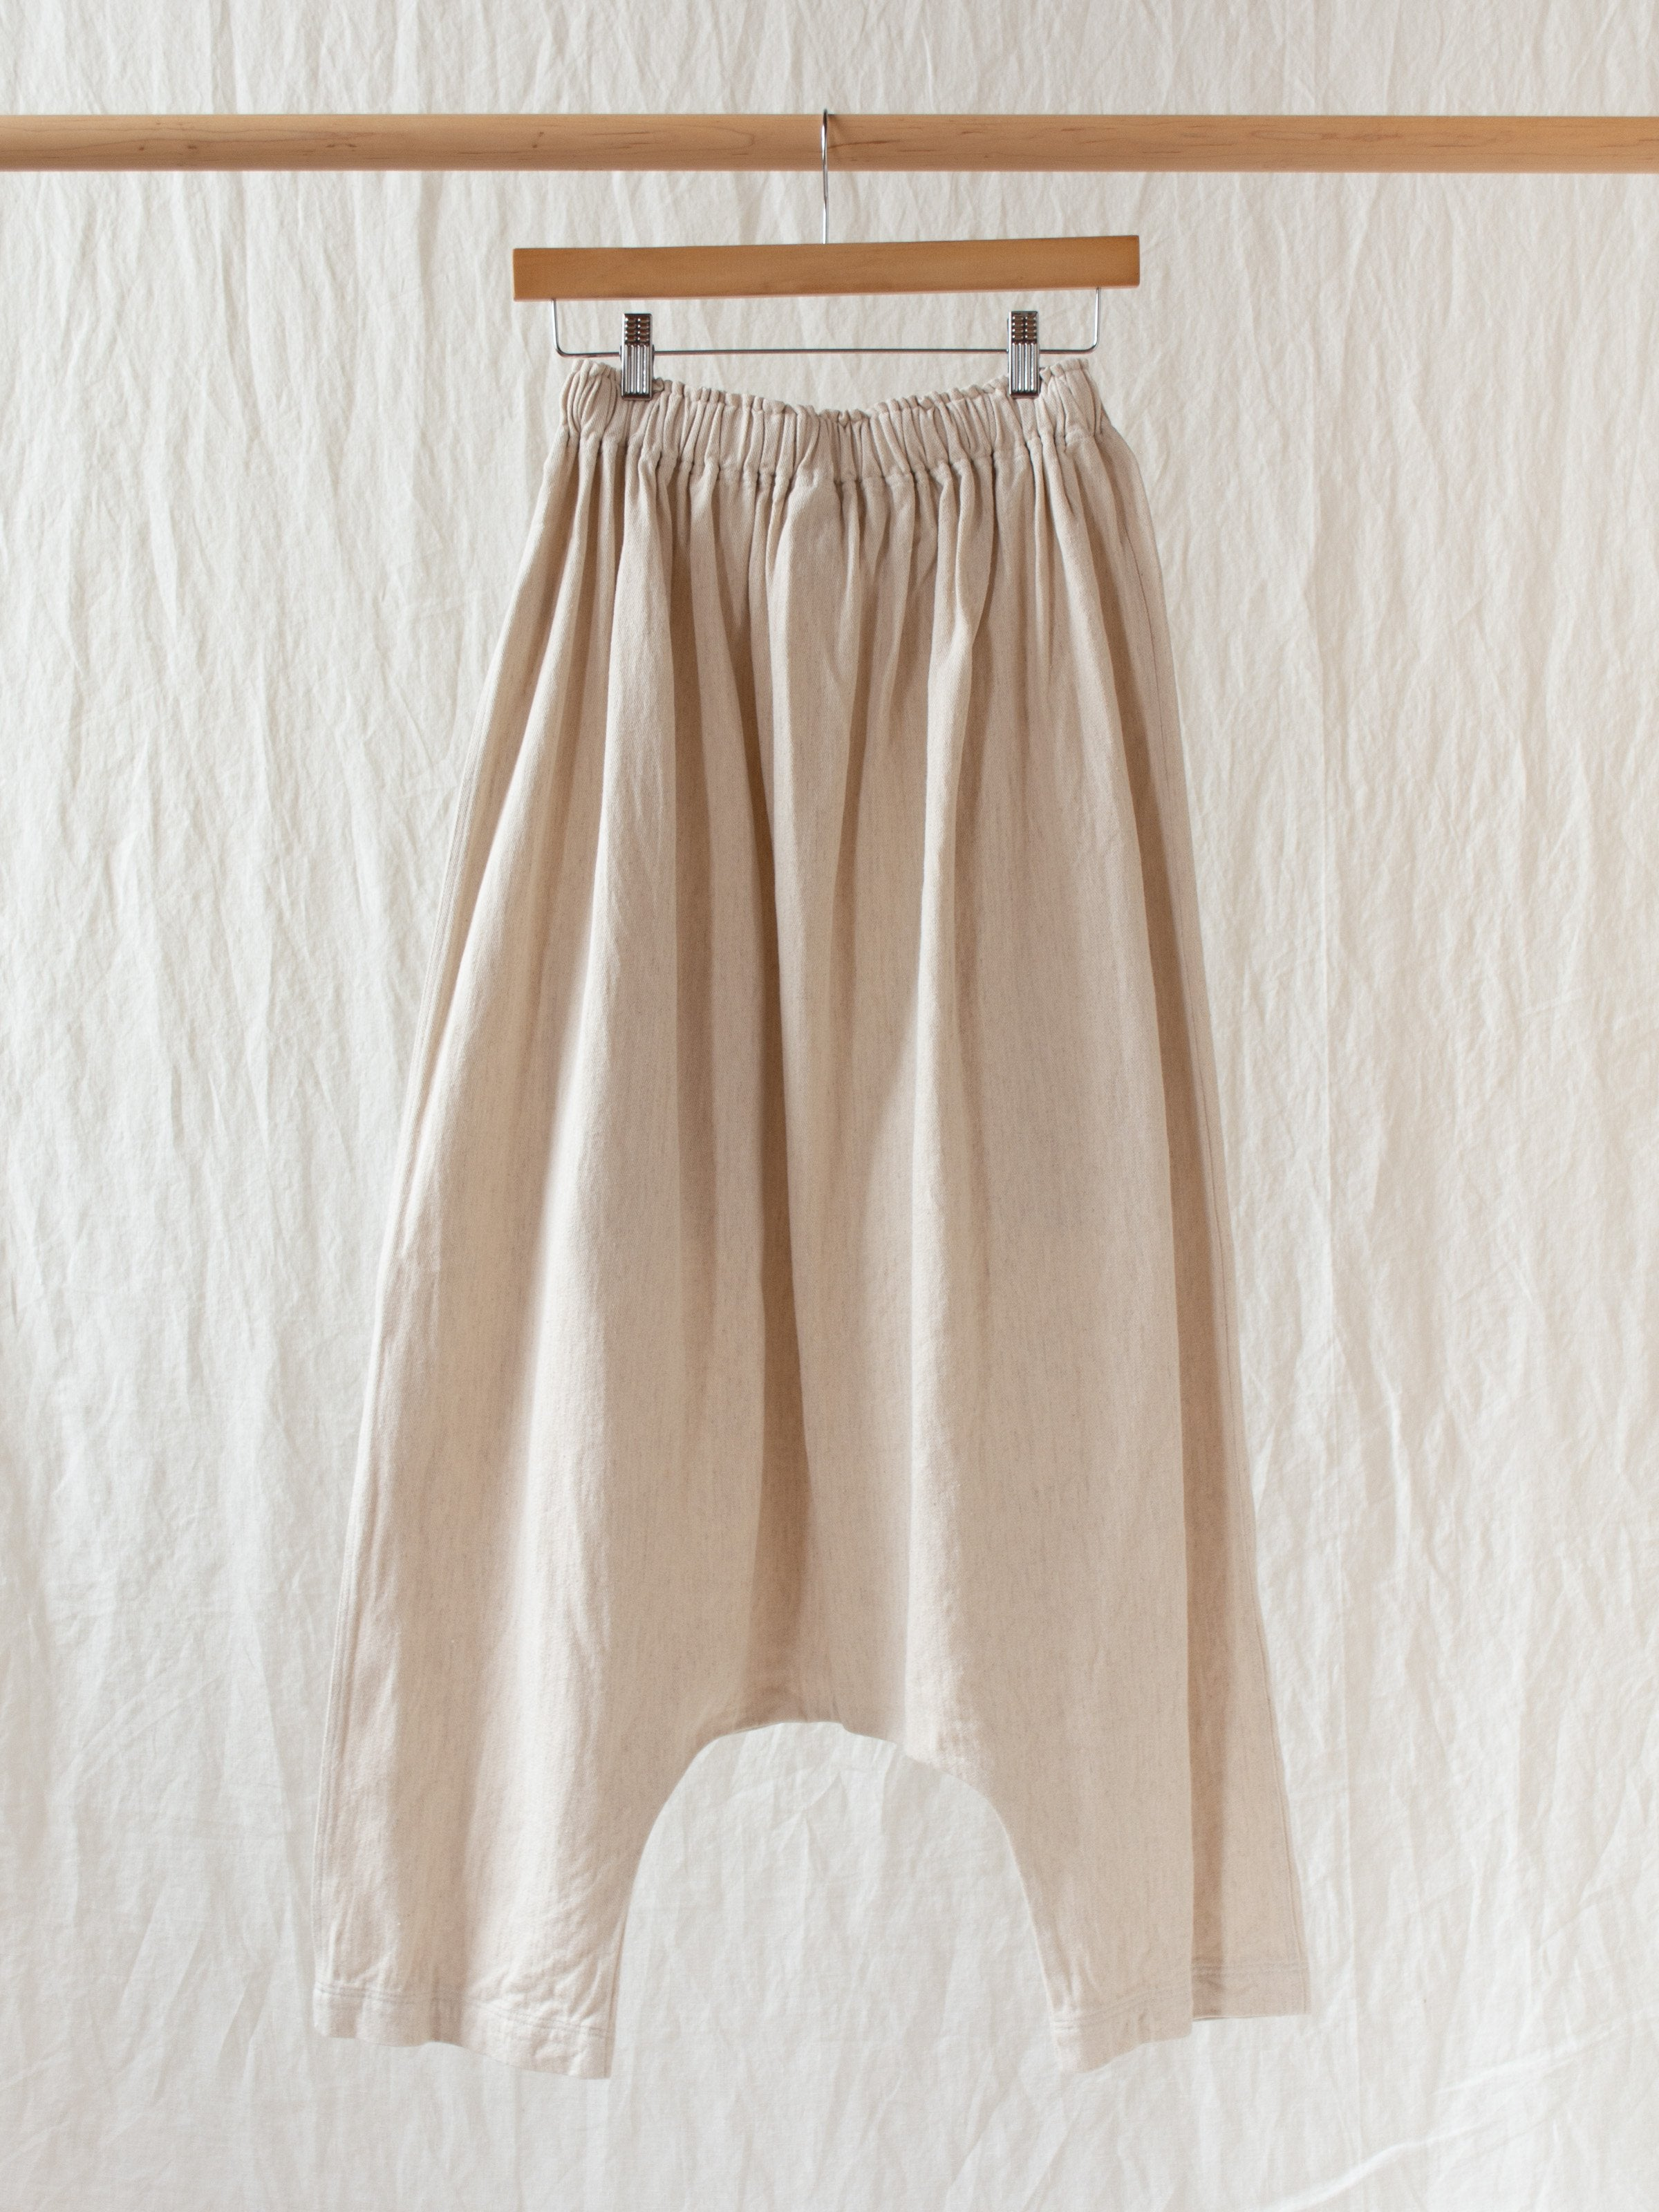 Namu Shop - Ichi Antiquites Cotton Linen Pant - Natural